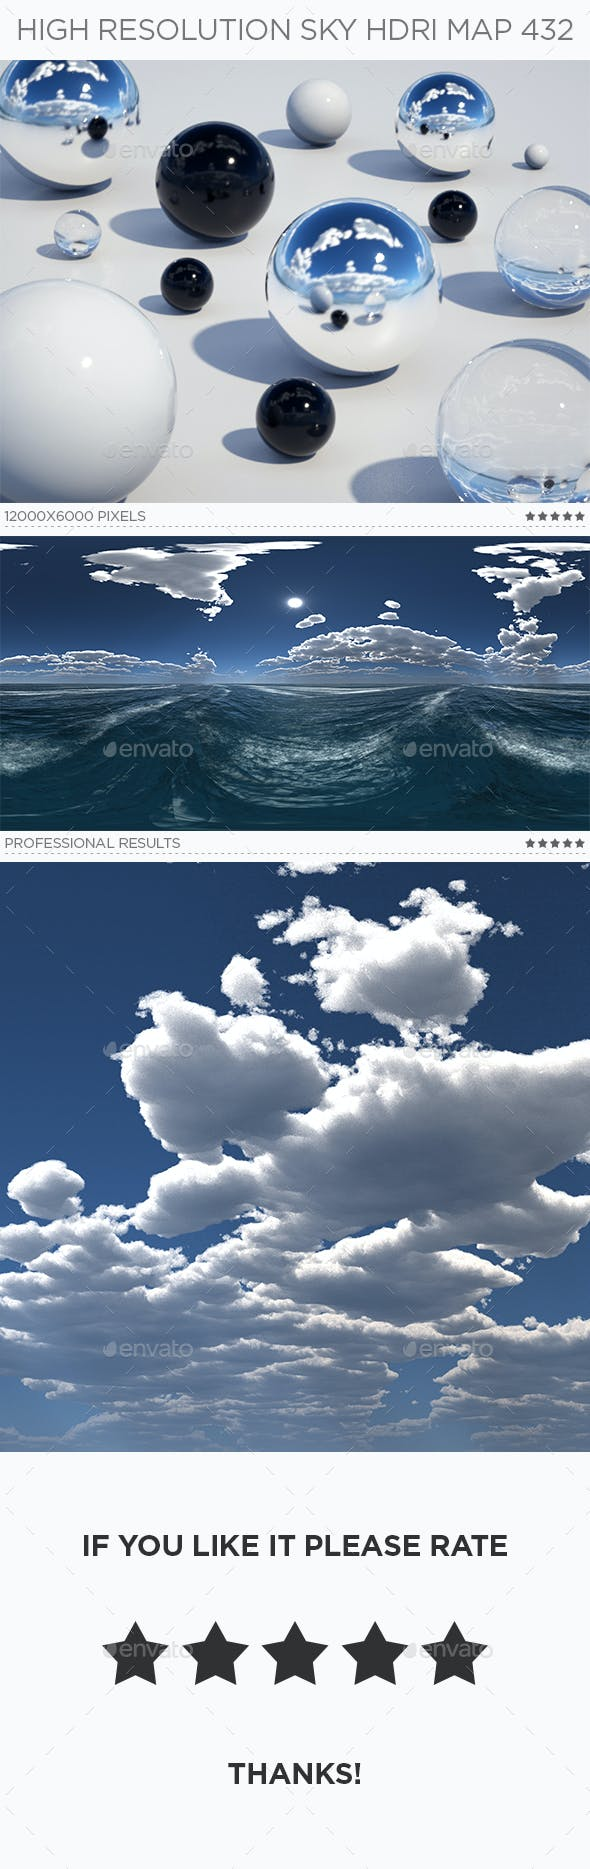 High Resolution Sky HDRi Map 432 - 3DOcean Item for Sale